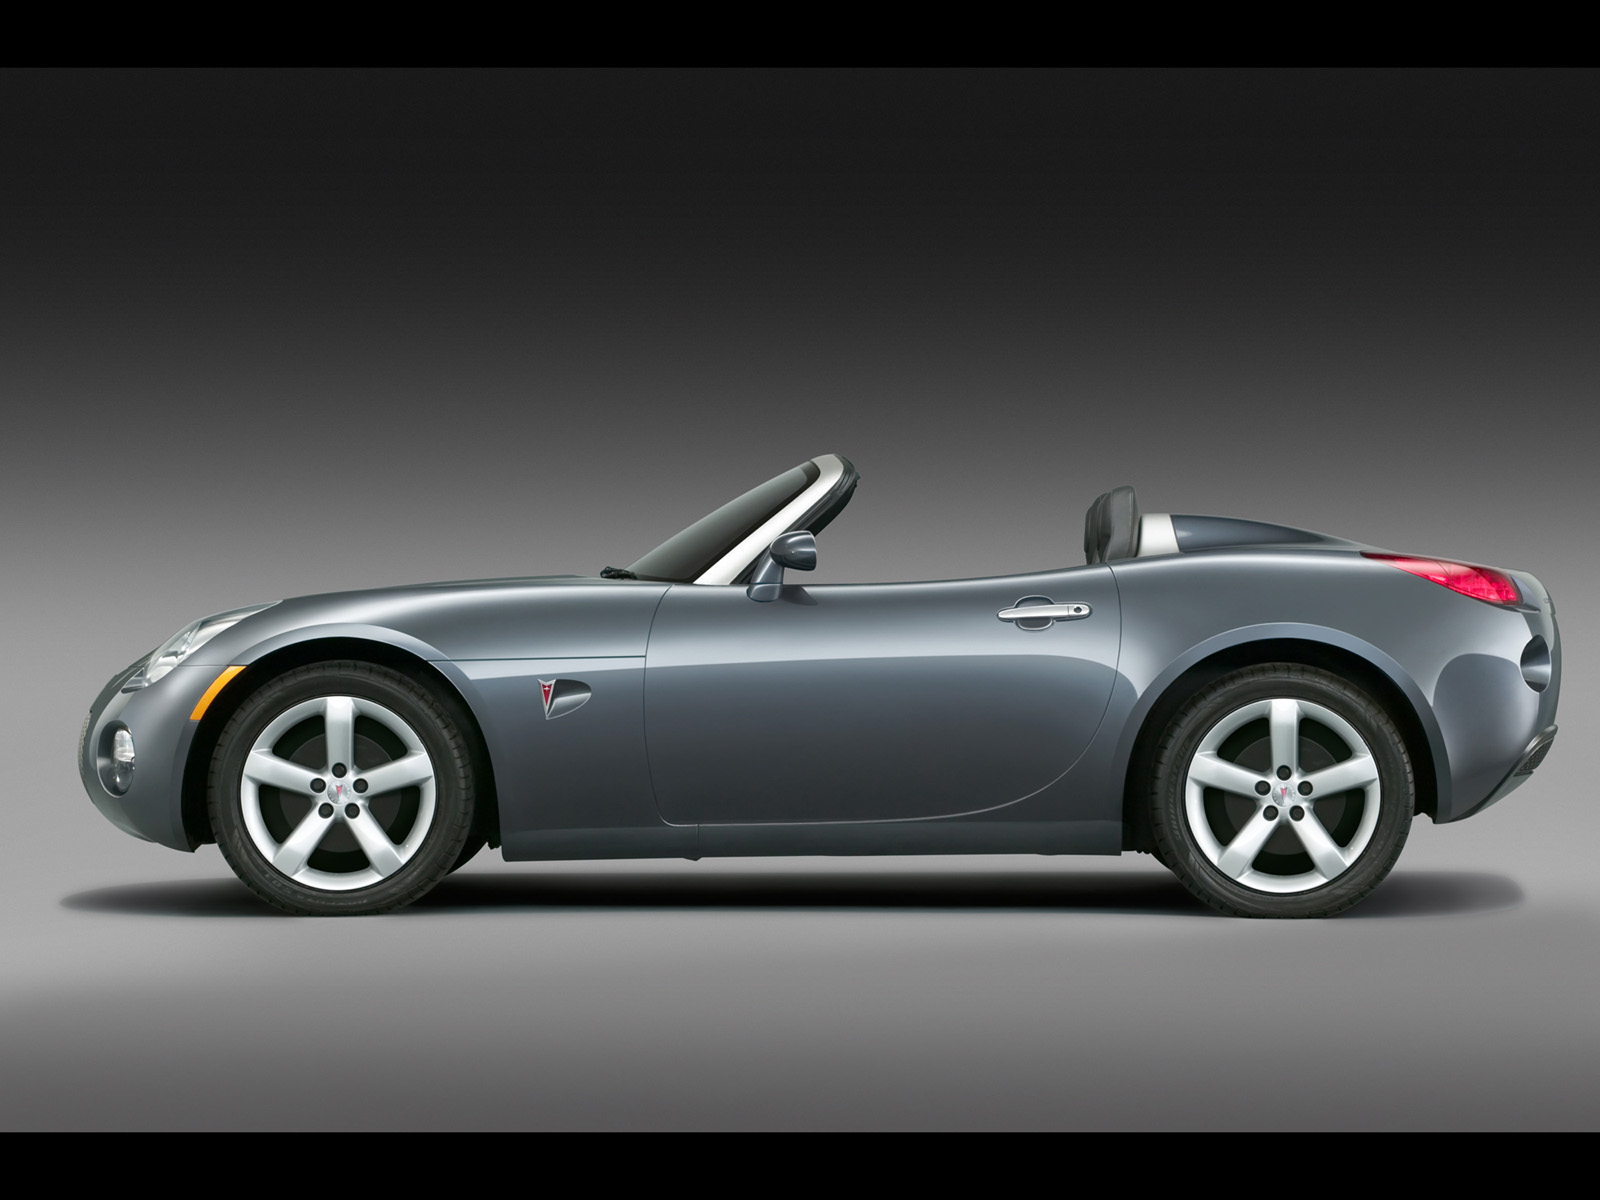 Best Selection Of Pictures For Car 2006 Pontiac Solstice On All The Internet Enjoy High Quality Gallery Cars And Tell Your Friends In Social